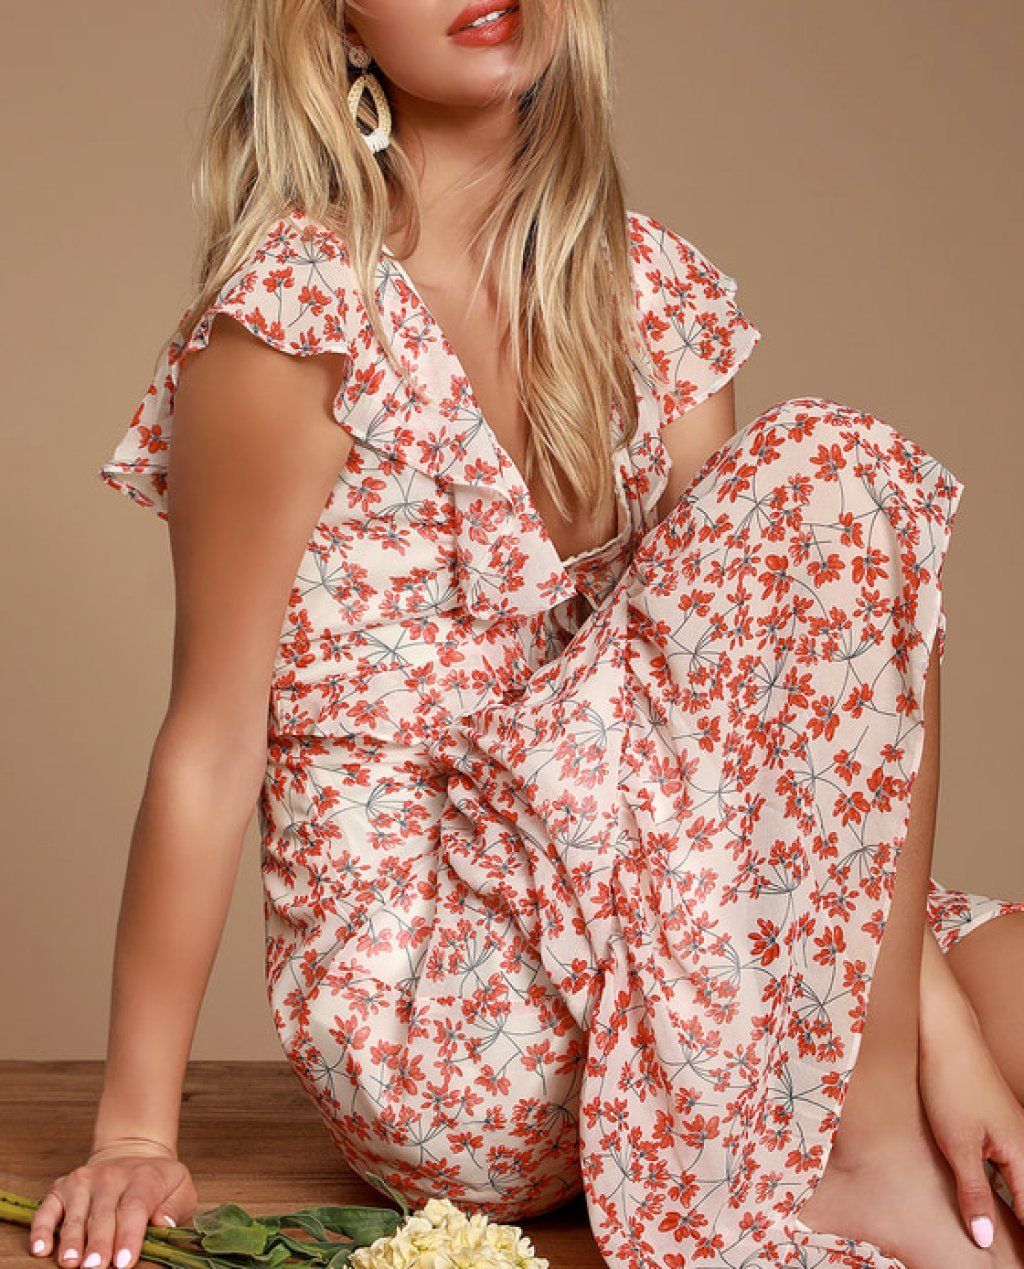 Darling Daydream Red and White Floral Print Ruffled Maxi Dress